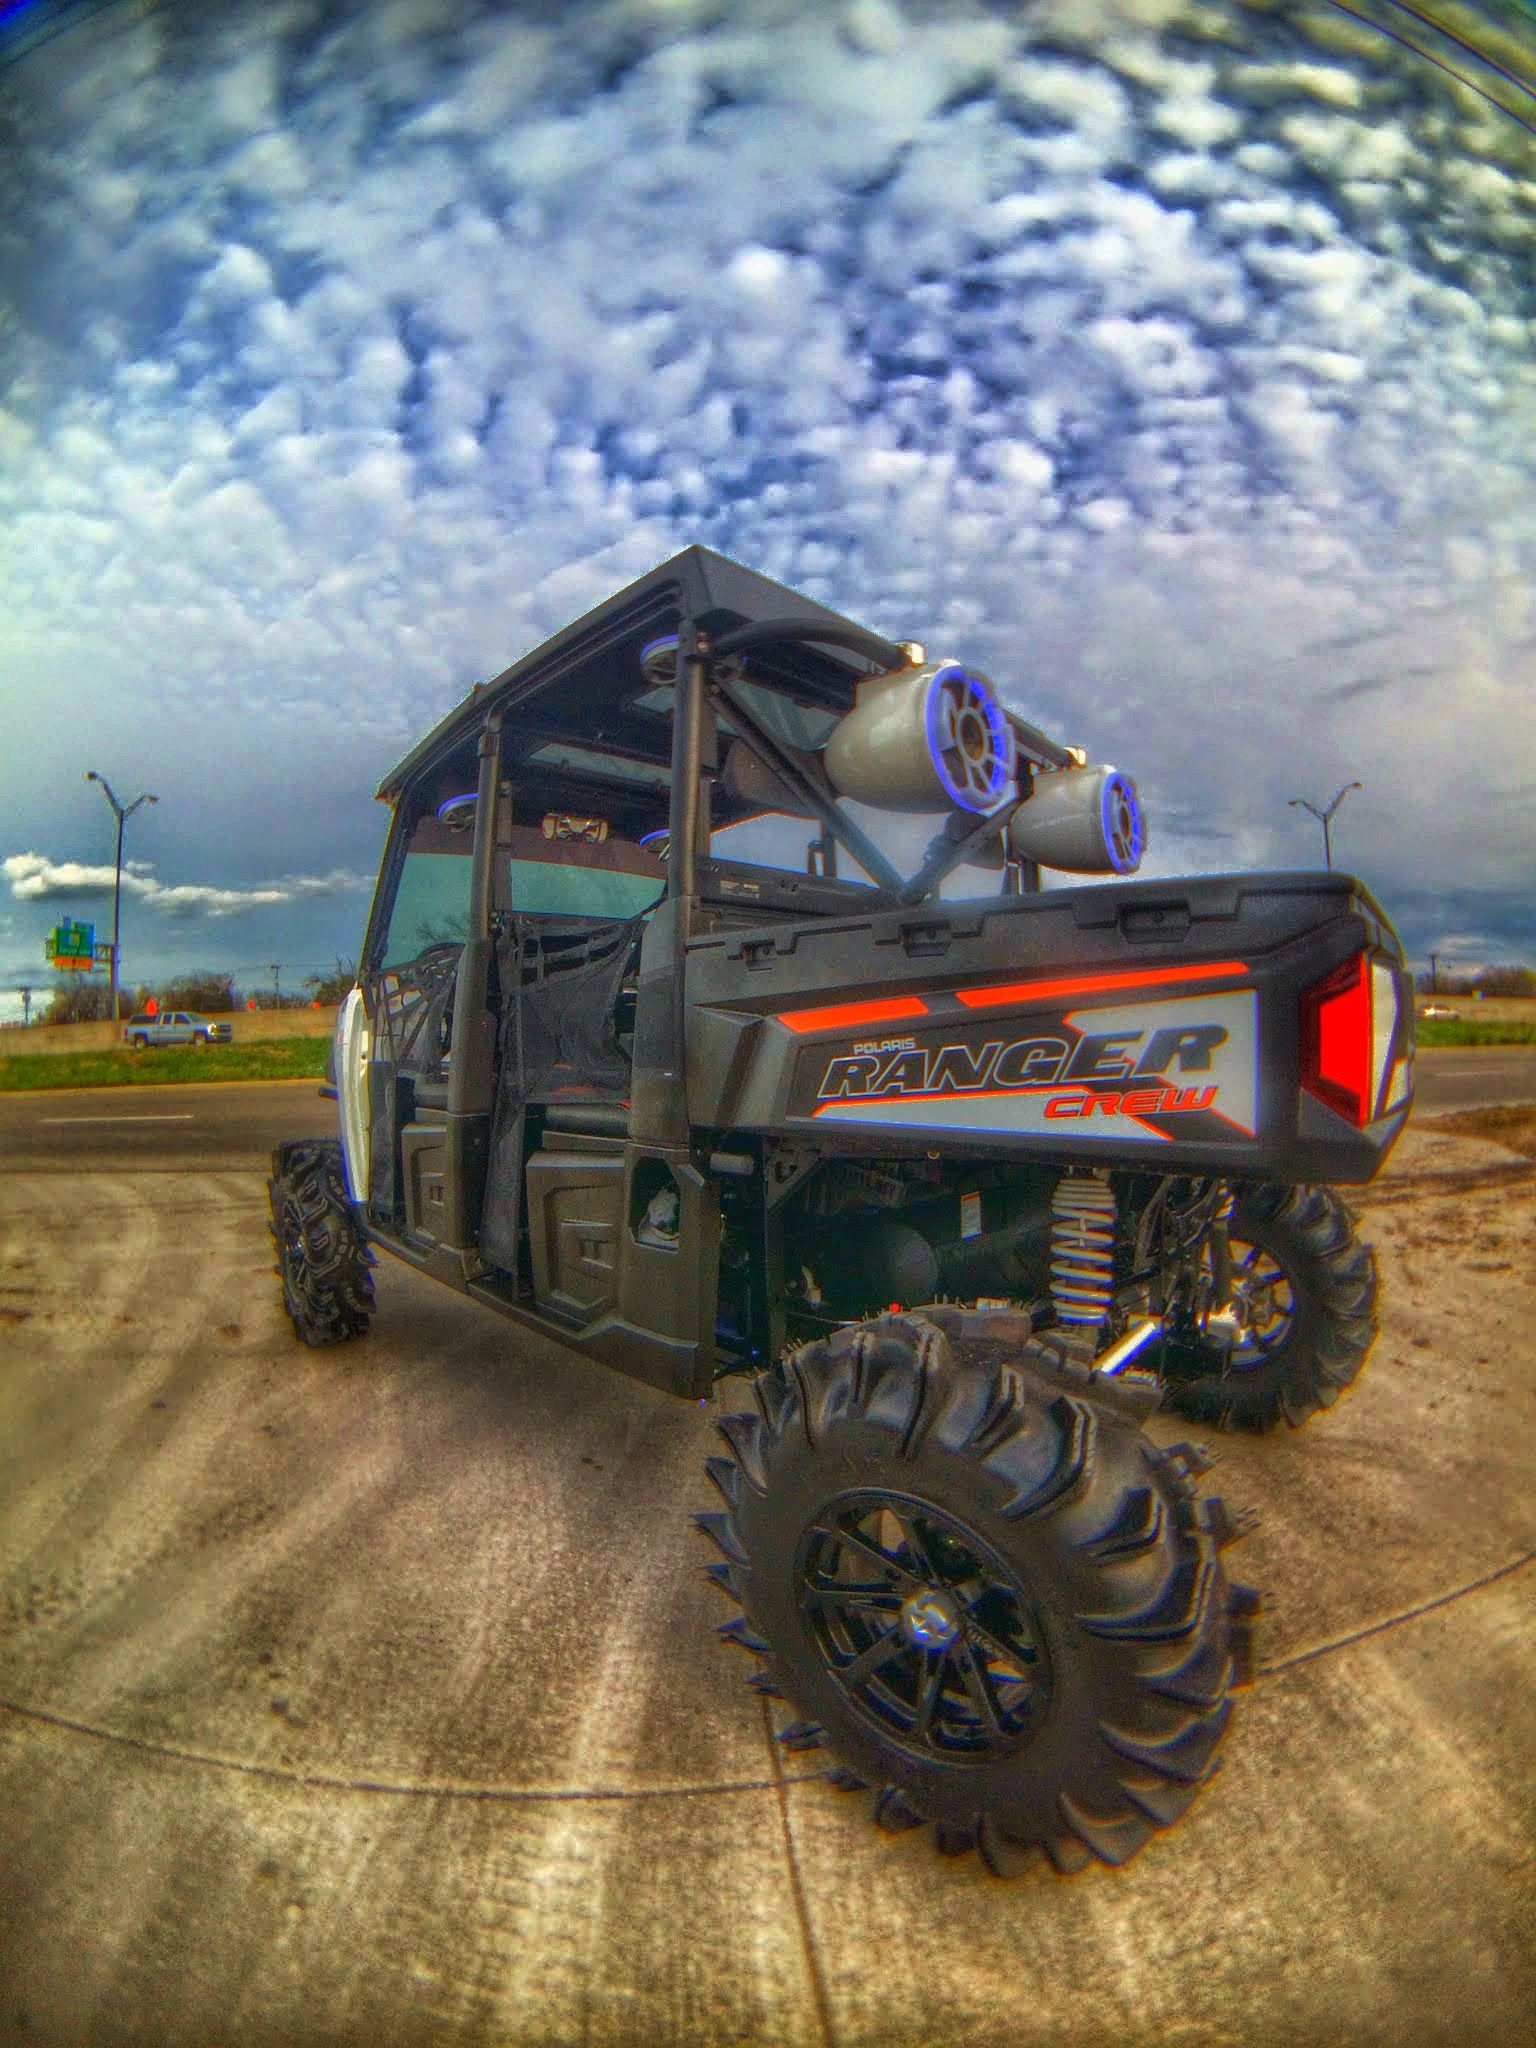 Check out the latest build from wc3 a 2015 ranger crew